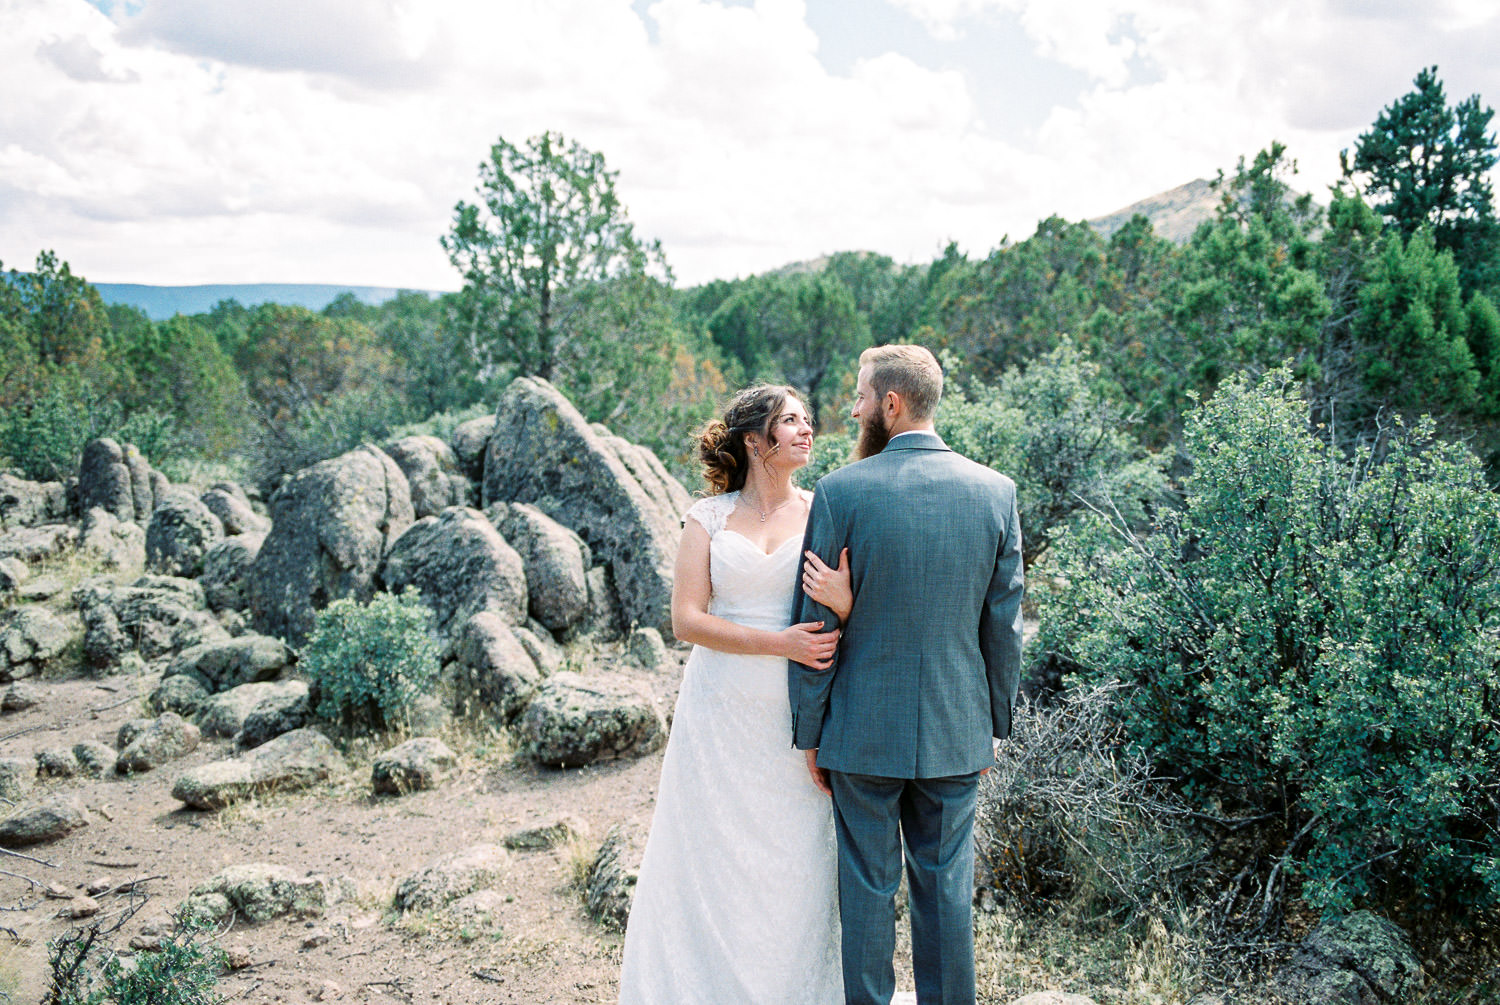 Joshua Tree National Park Wedding photography fine art film Fuji 400H